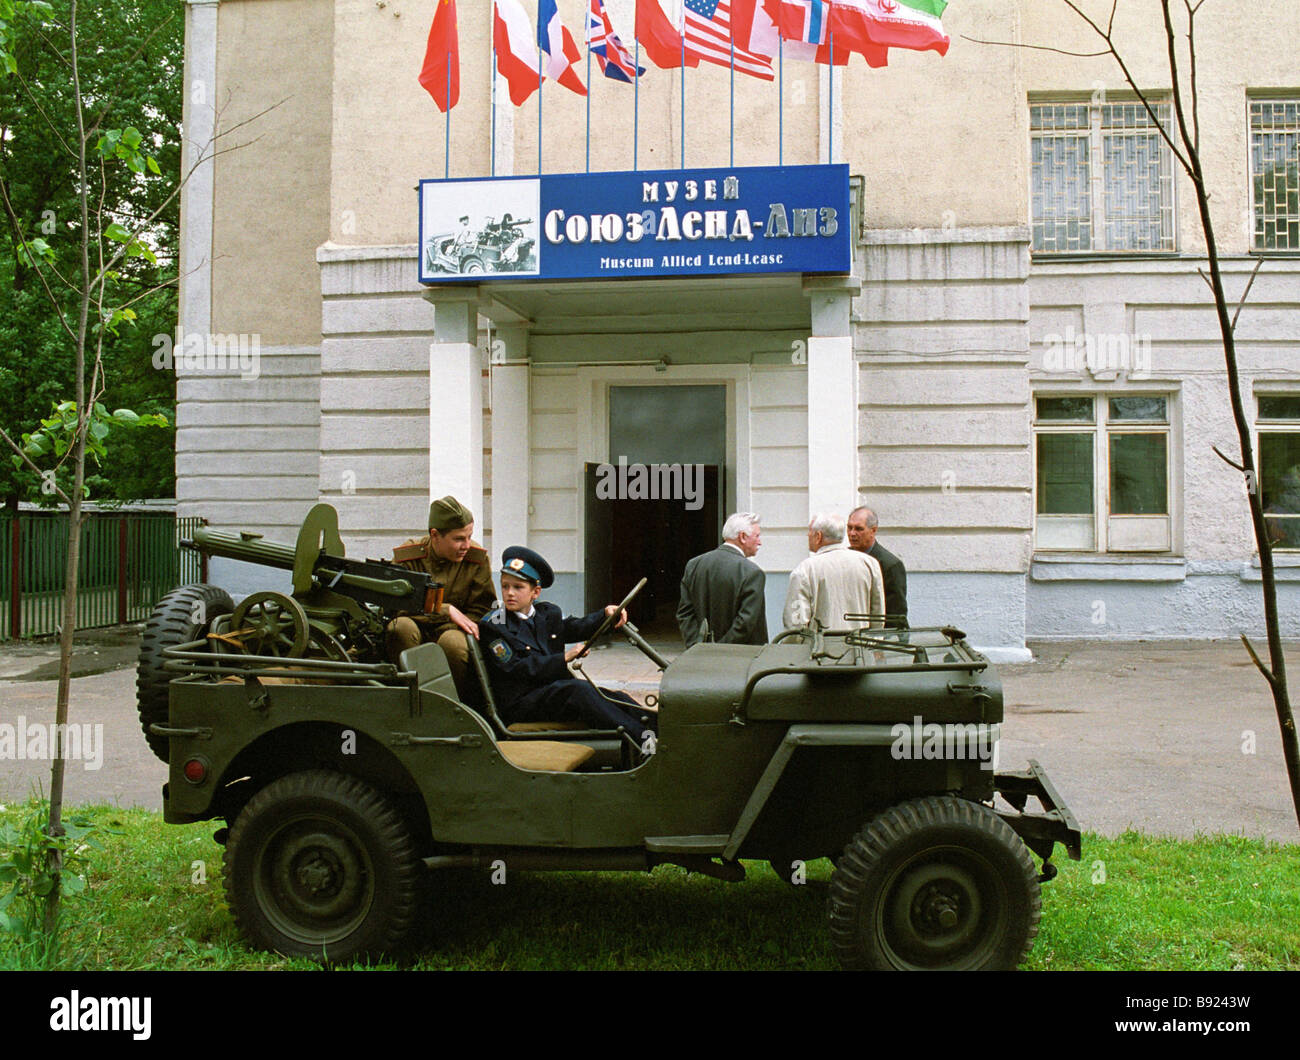 A WILLIS military cat at the Land Lease Union museum that opened in the Ostrovsky school Moscow - Stock Image